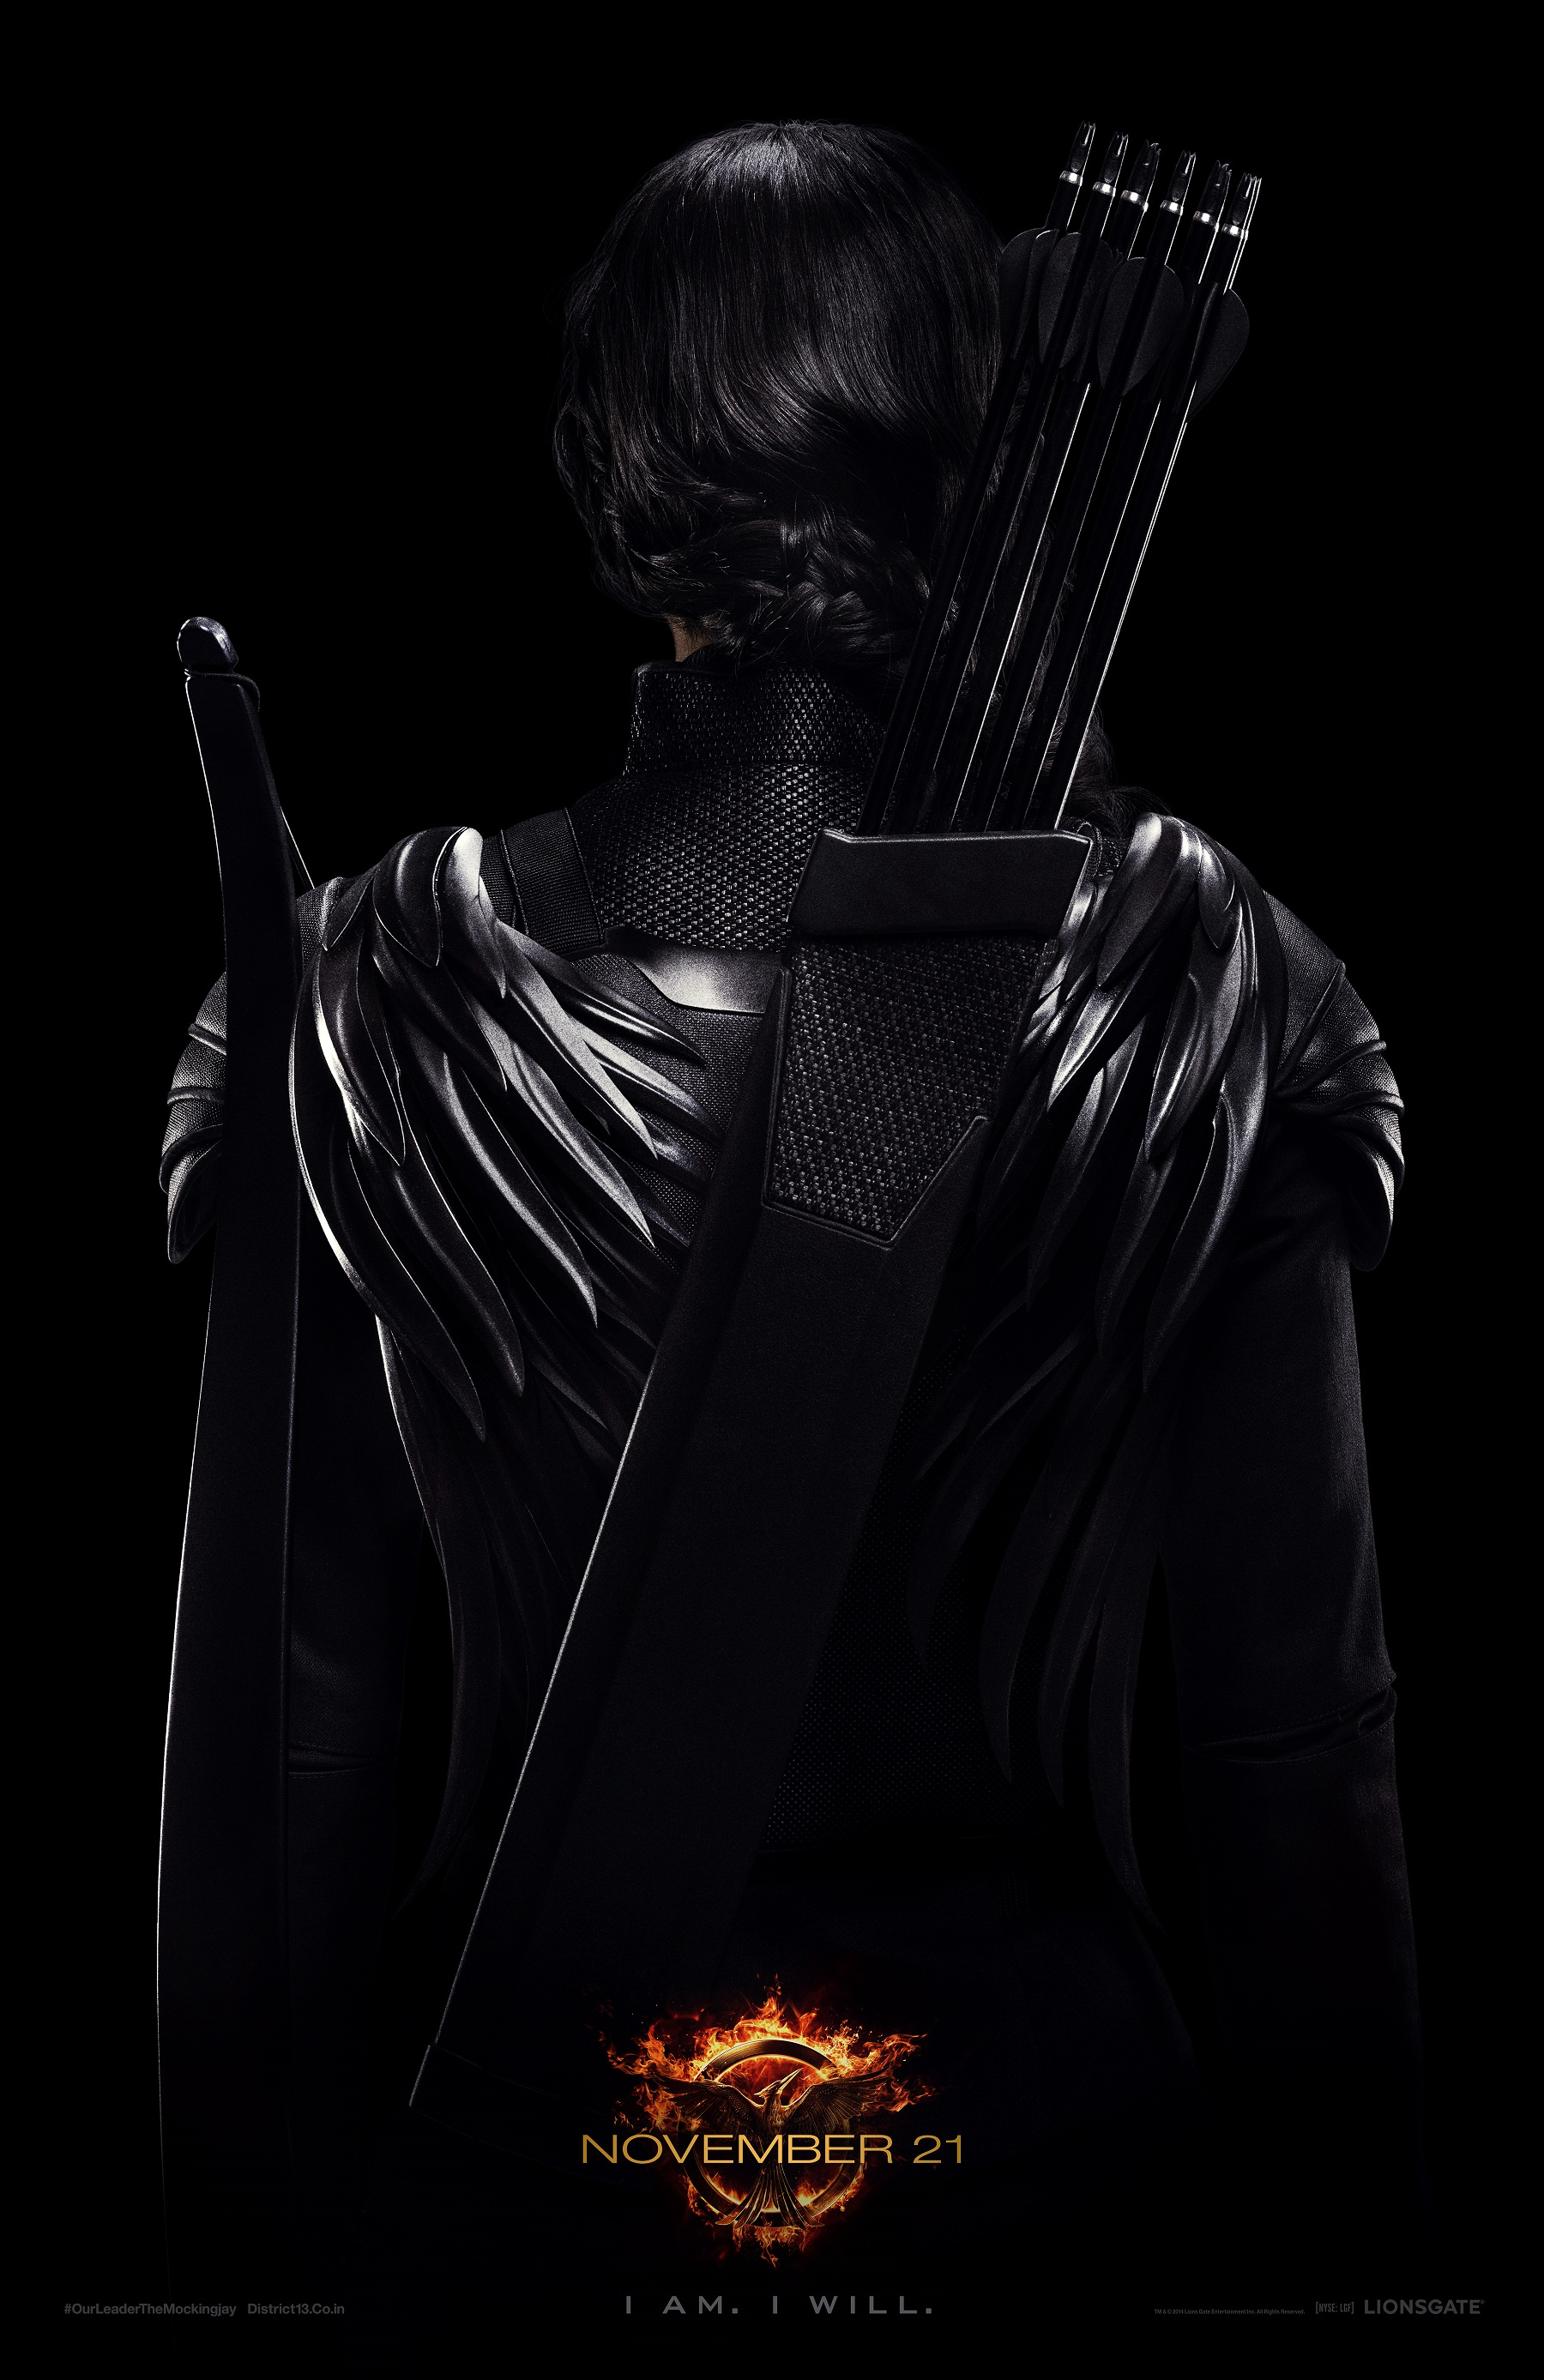 FIN02 Seashore 1Sht Katniss Tsr VF New Hunger Games: Mockingjay Teaser Poster Shows Rebellious Katniss